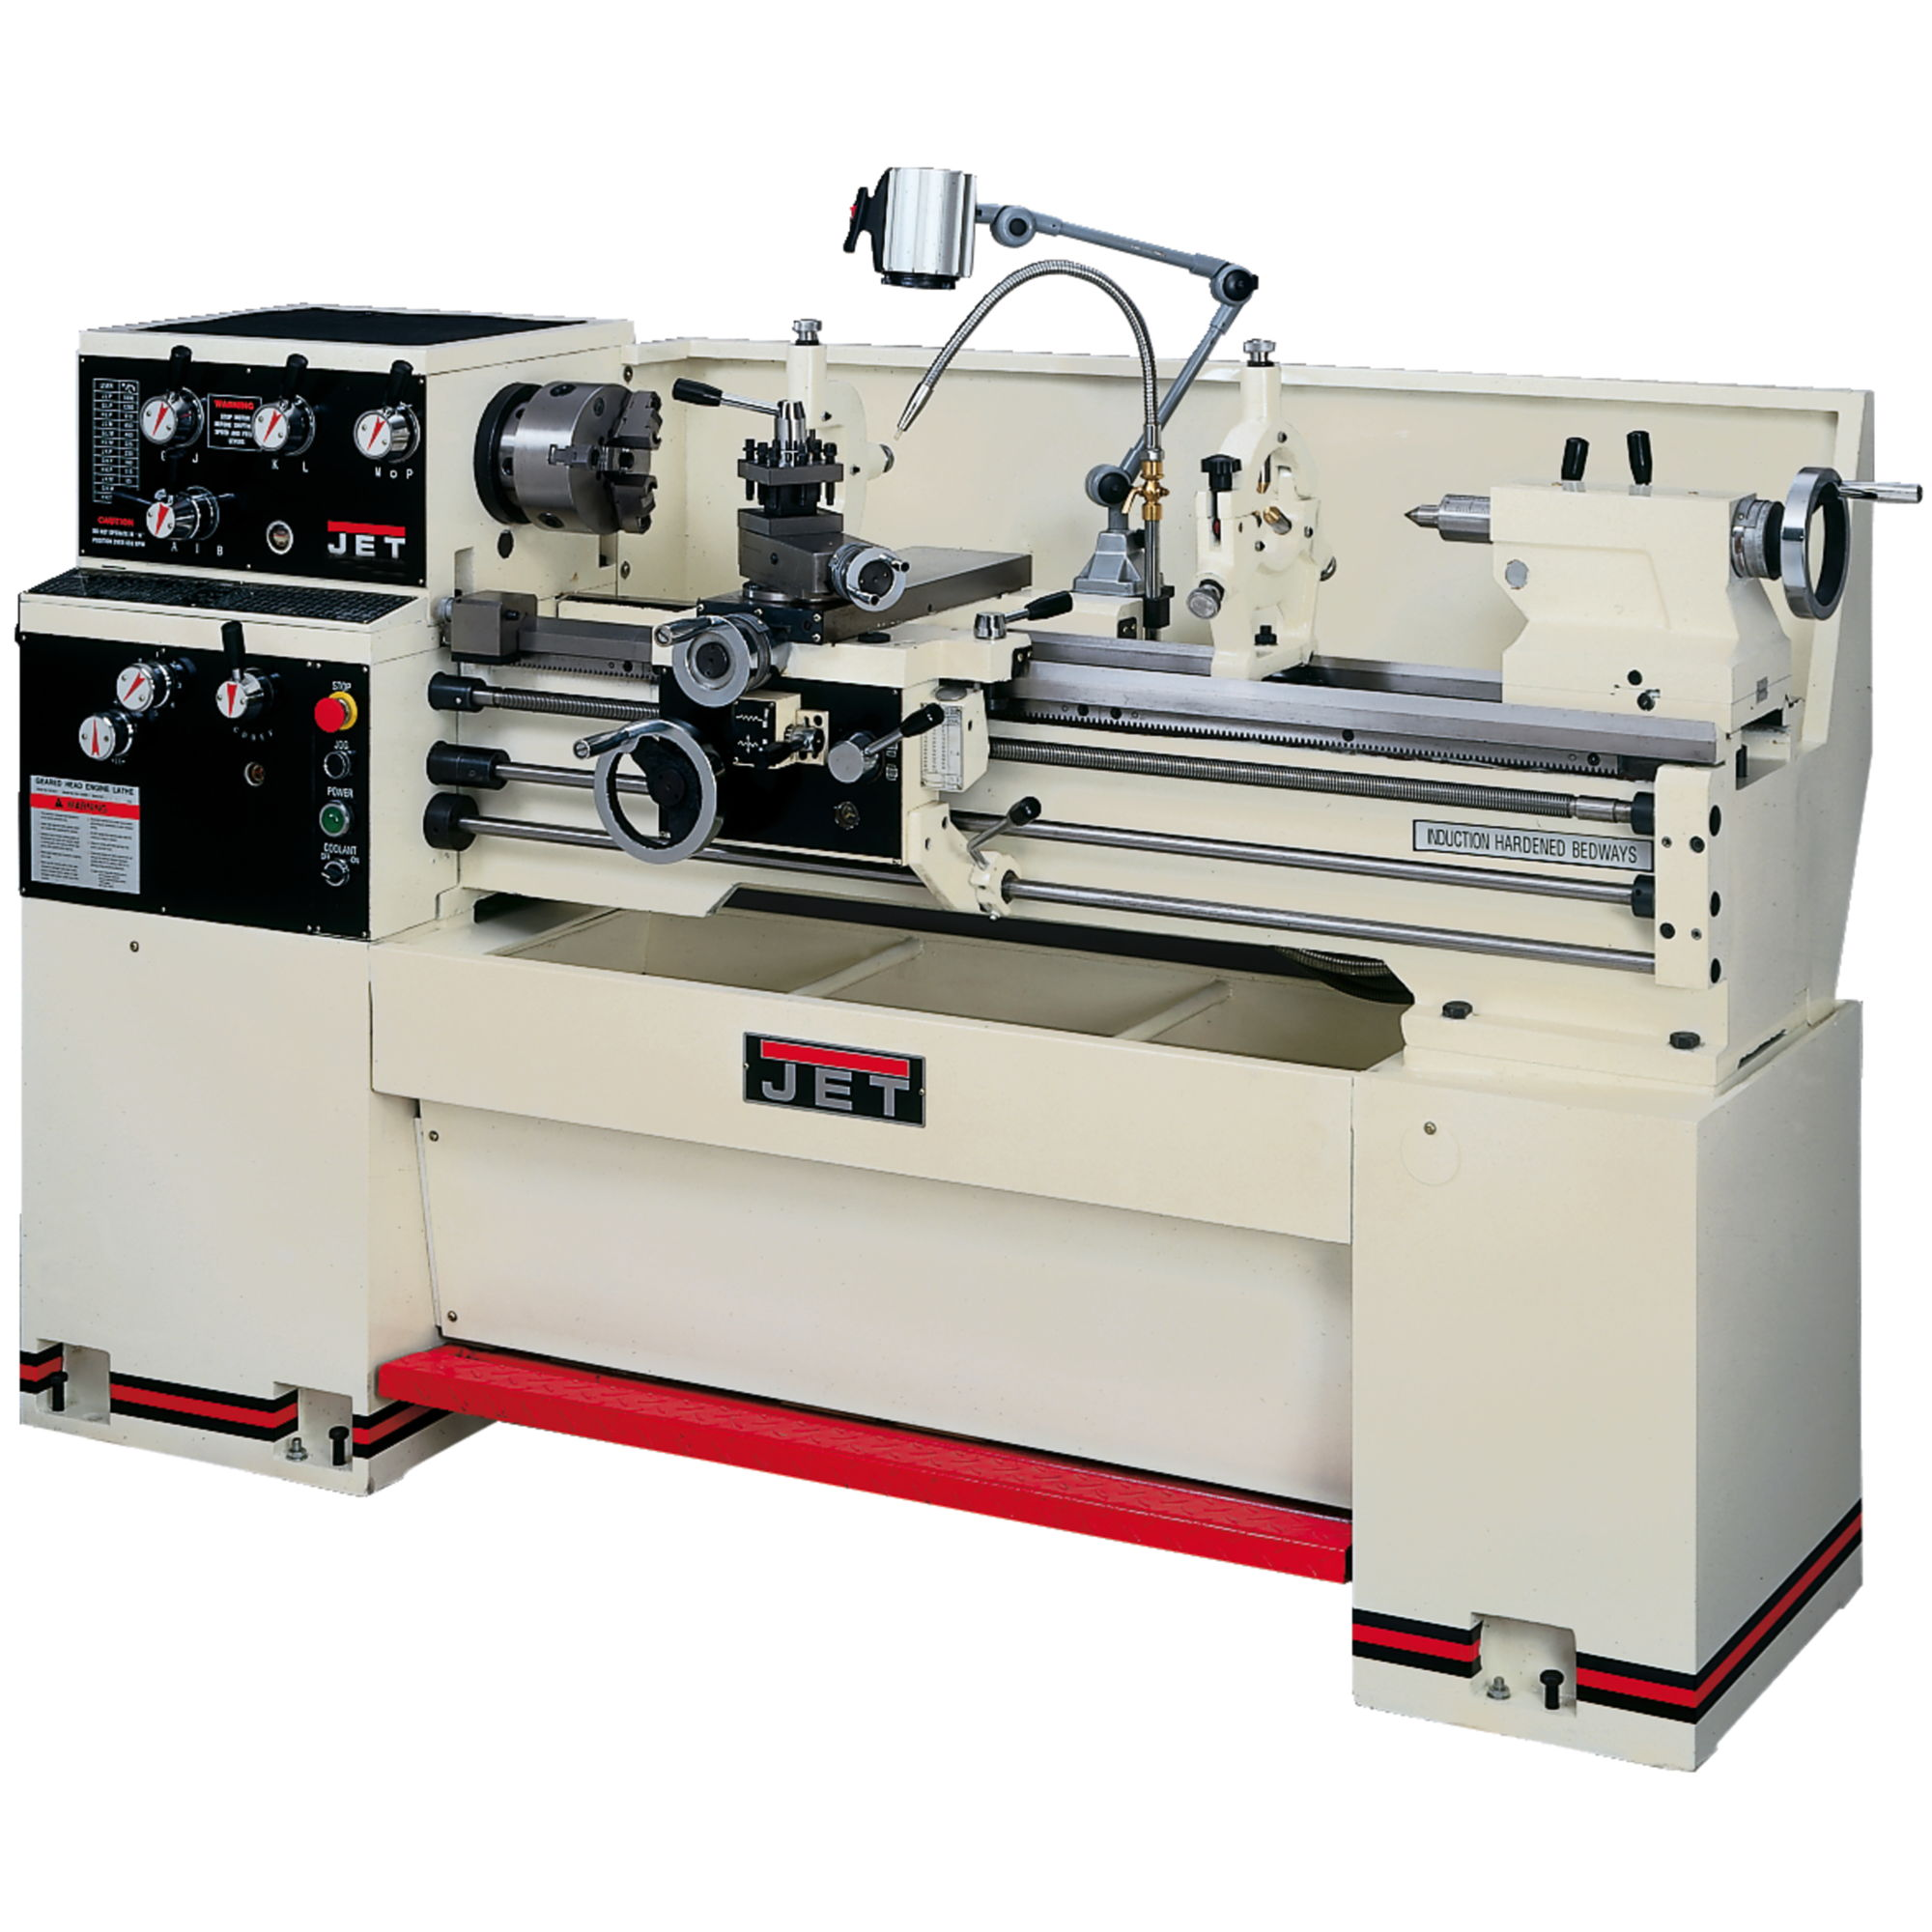 JET GH-1340W-1 1Ph Geared Head Lathe With Collet Closer